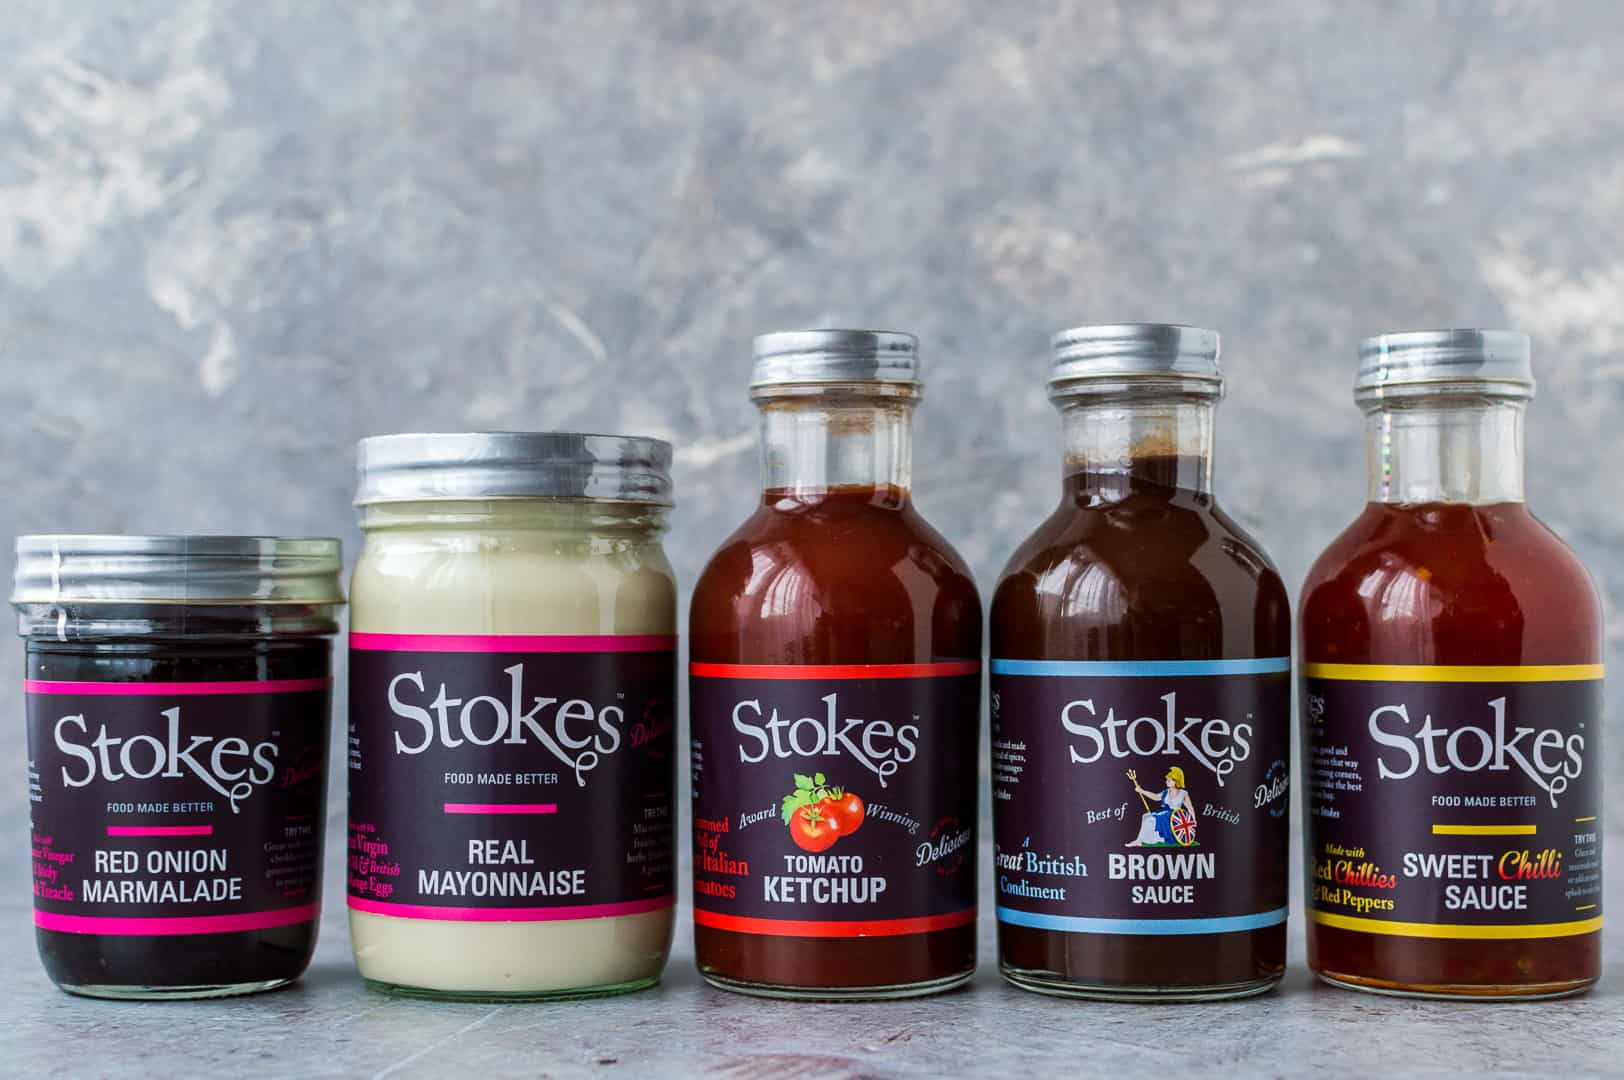 Stokes range of sauces